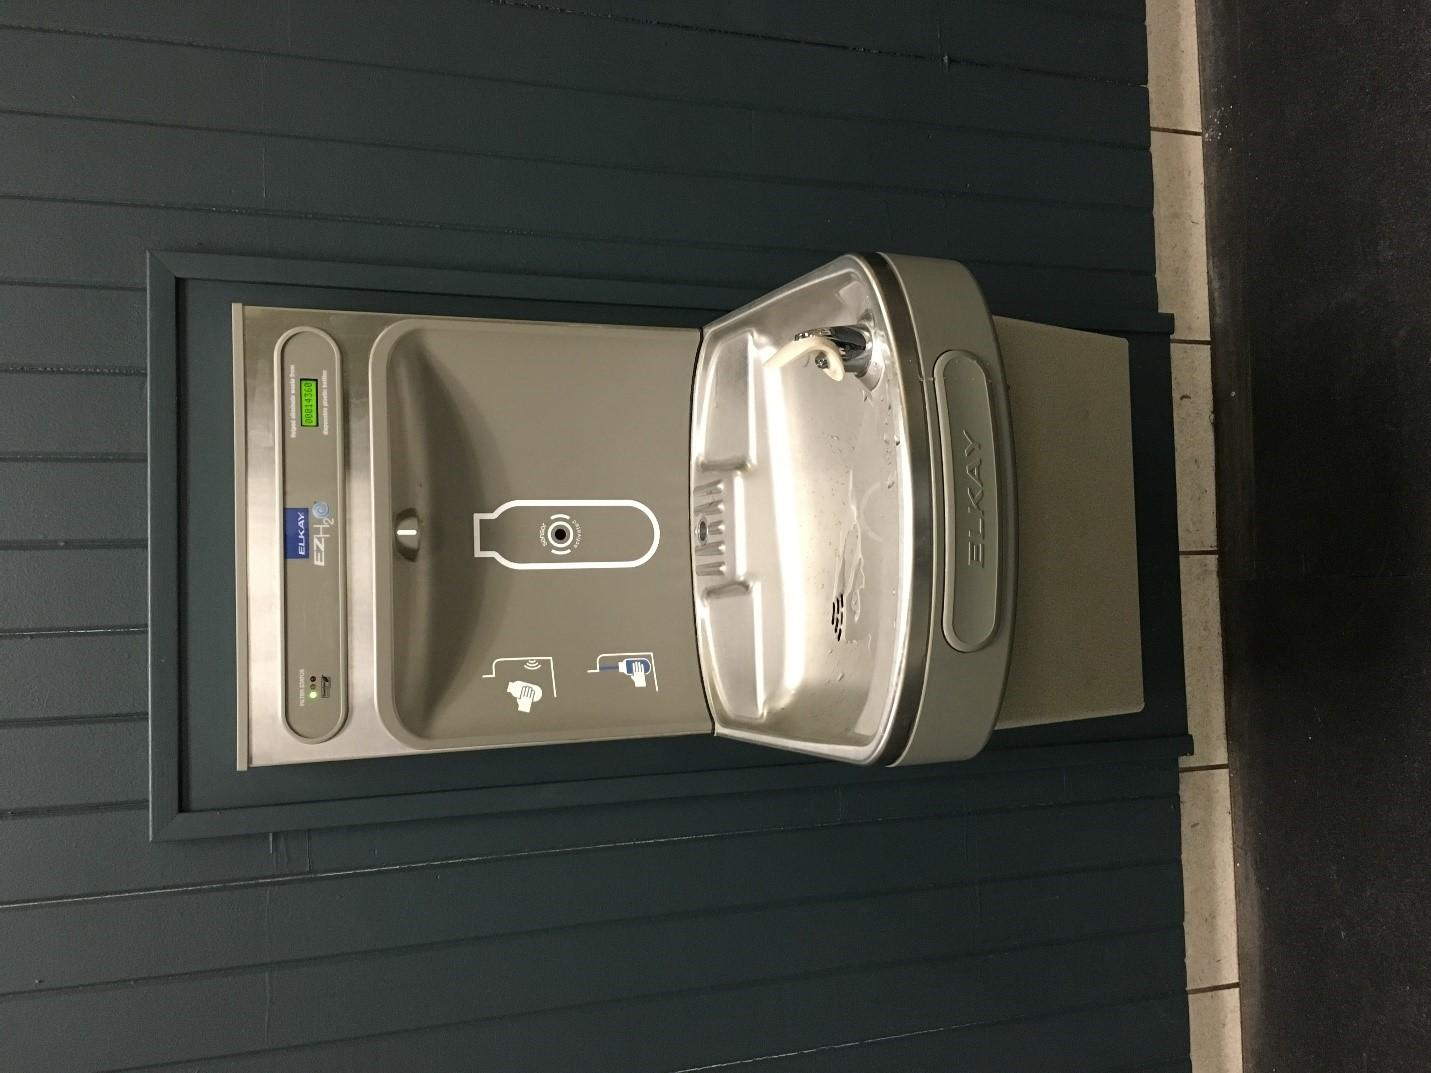 a new elkay water fountain with a green filter status in lossone rink courtesy of